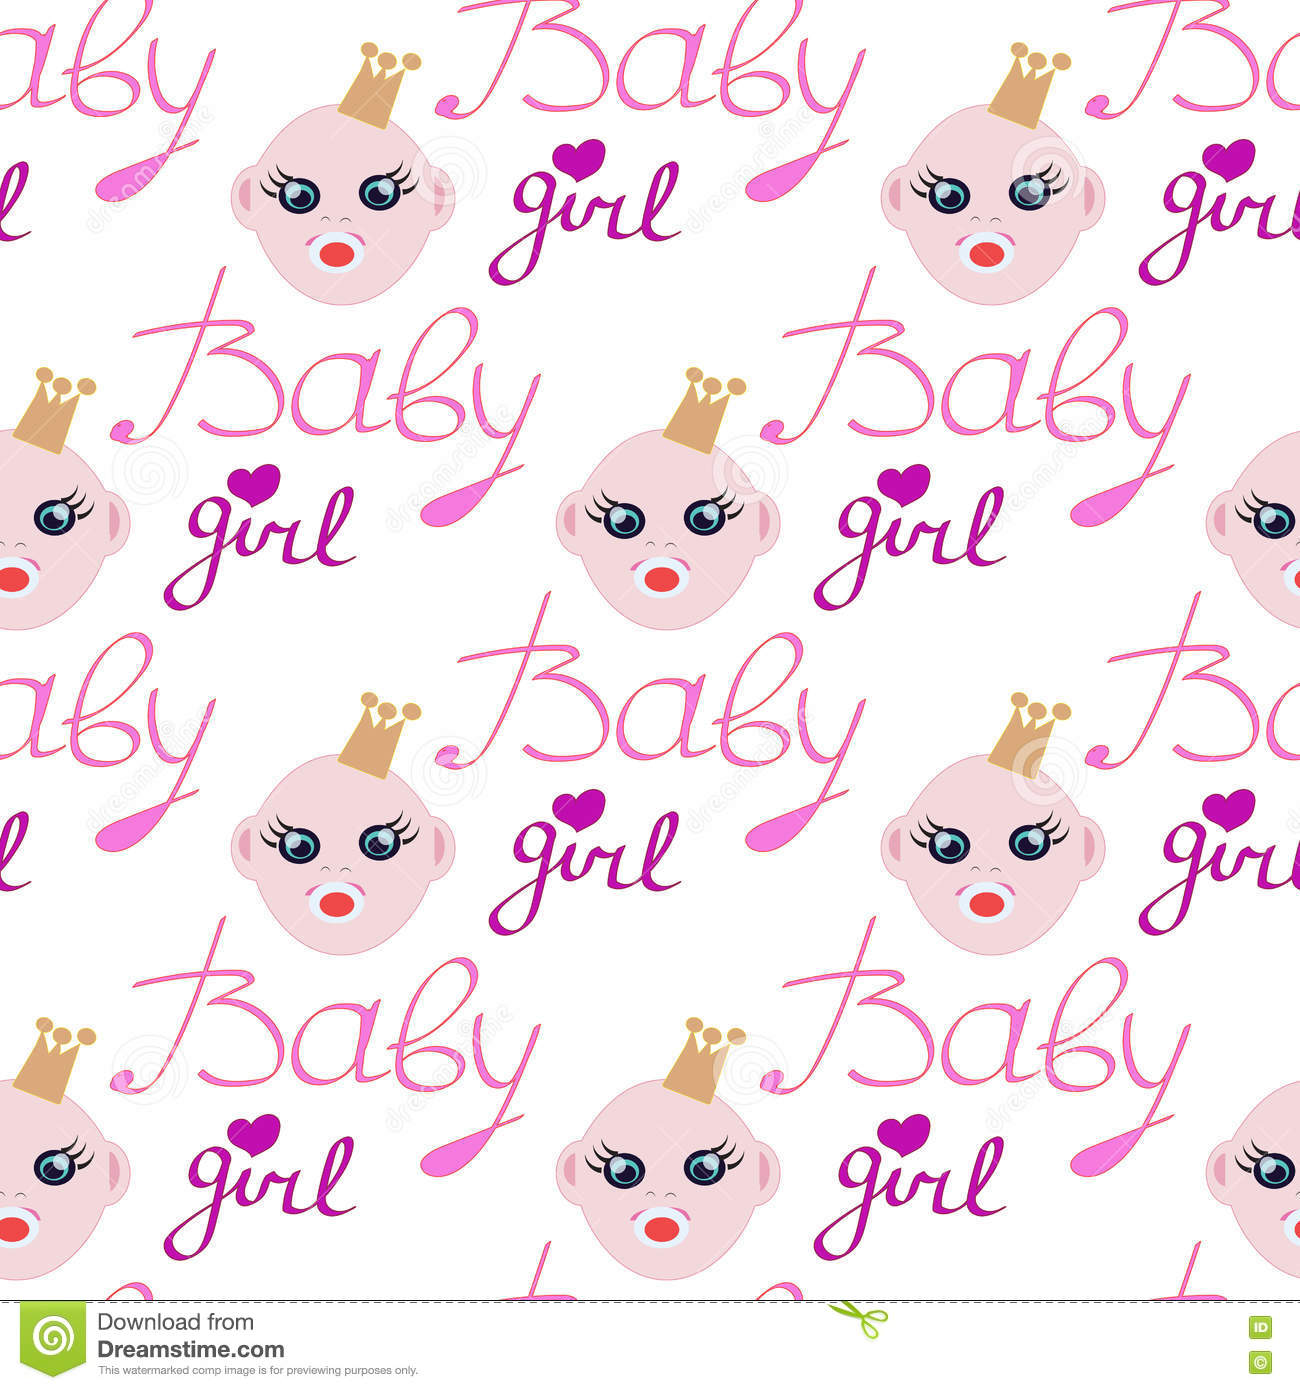 Baby Girl In One Birthday Invitation Card For Baby Shower – Birthday Invitation Cards for Baby Girl